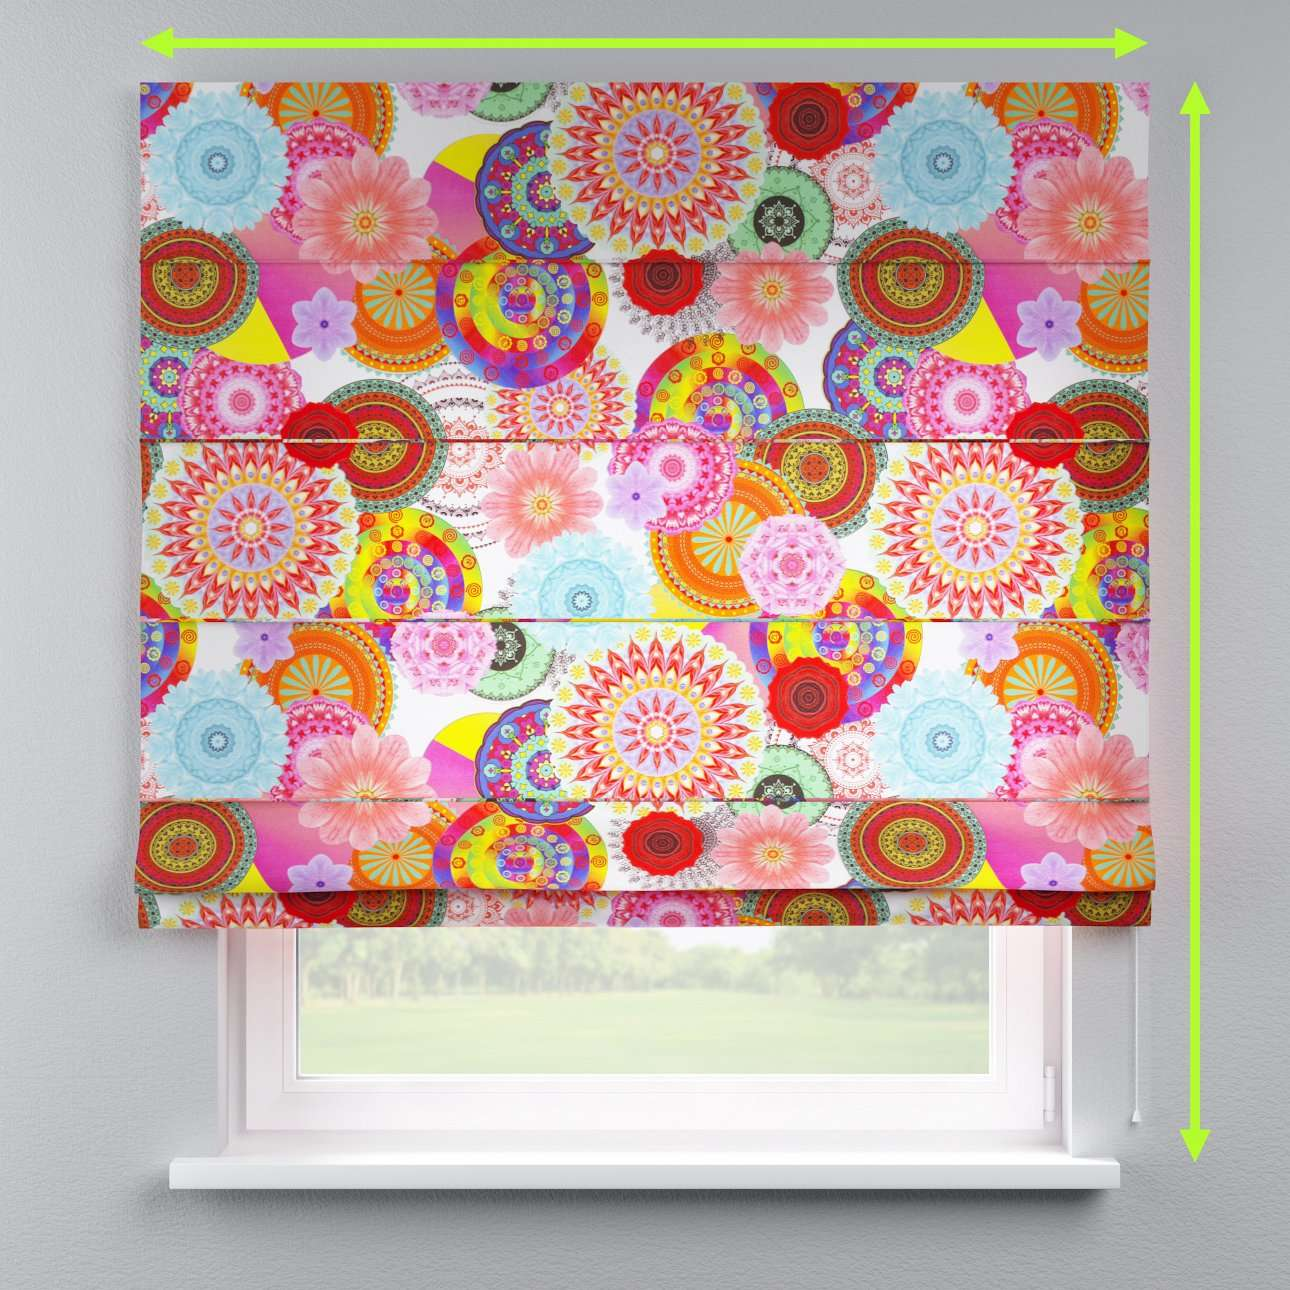 Capri roman blind in collection Comics/Geometrical, fabric: 135-22